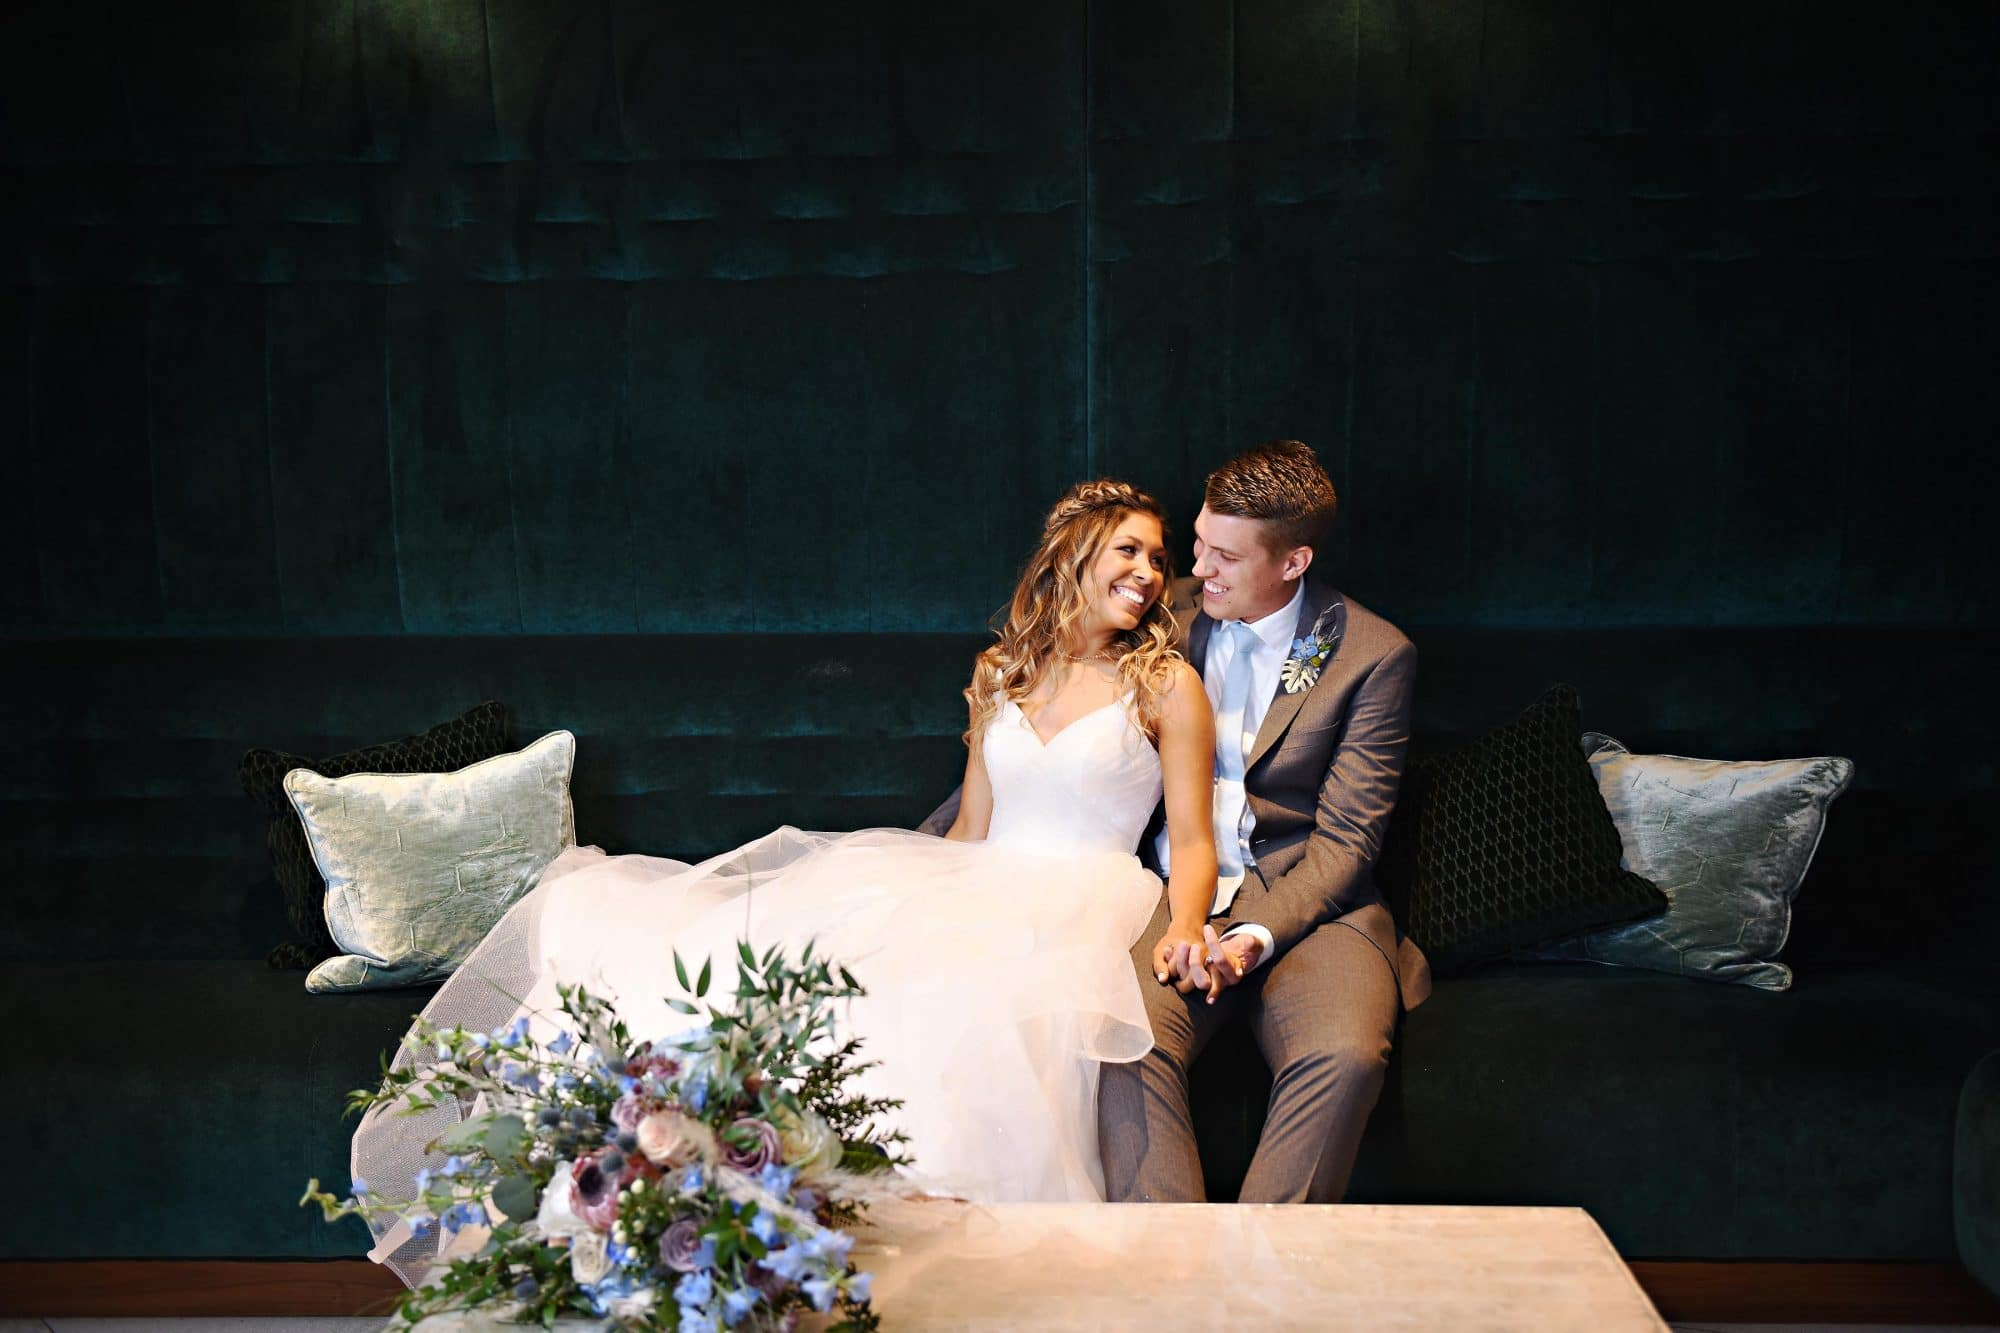 bride and groom on dark couch and dark wall